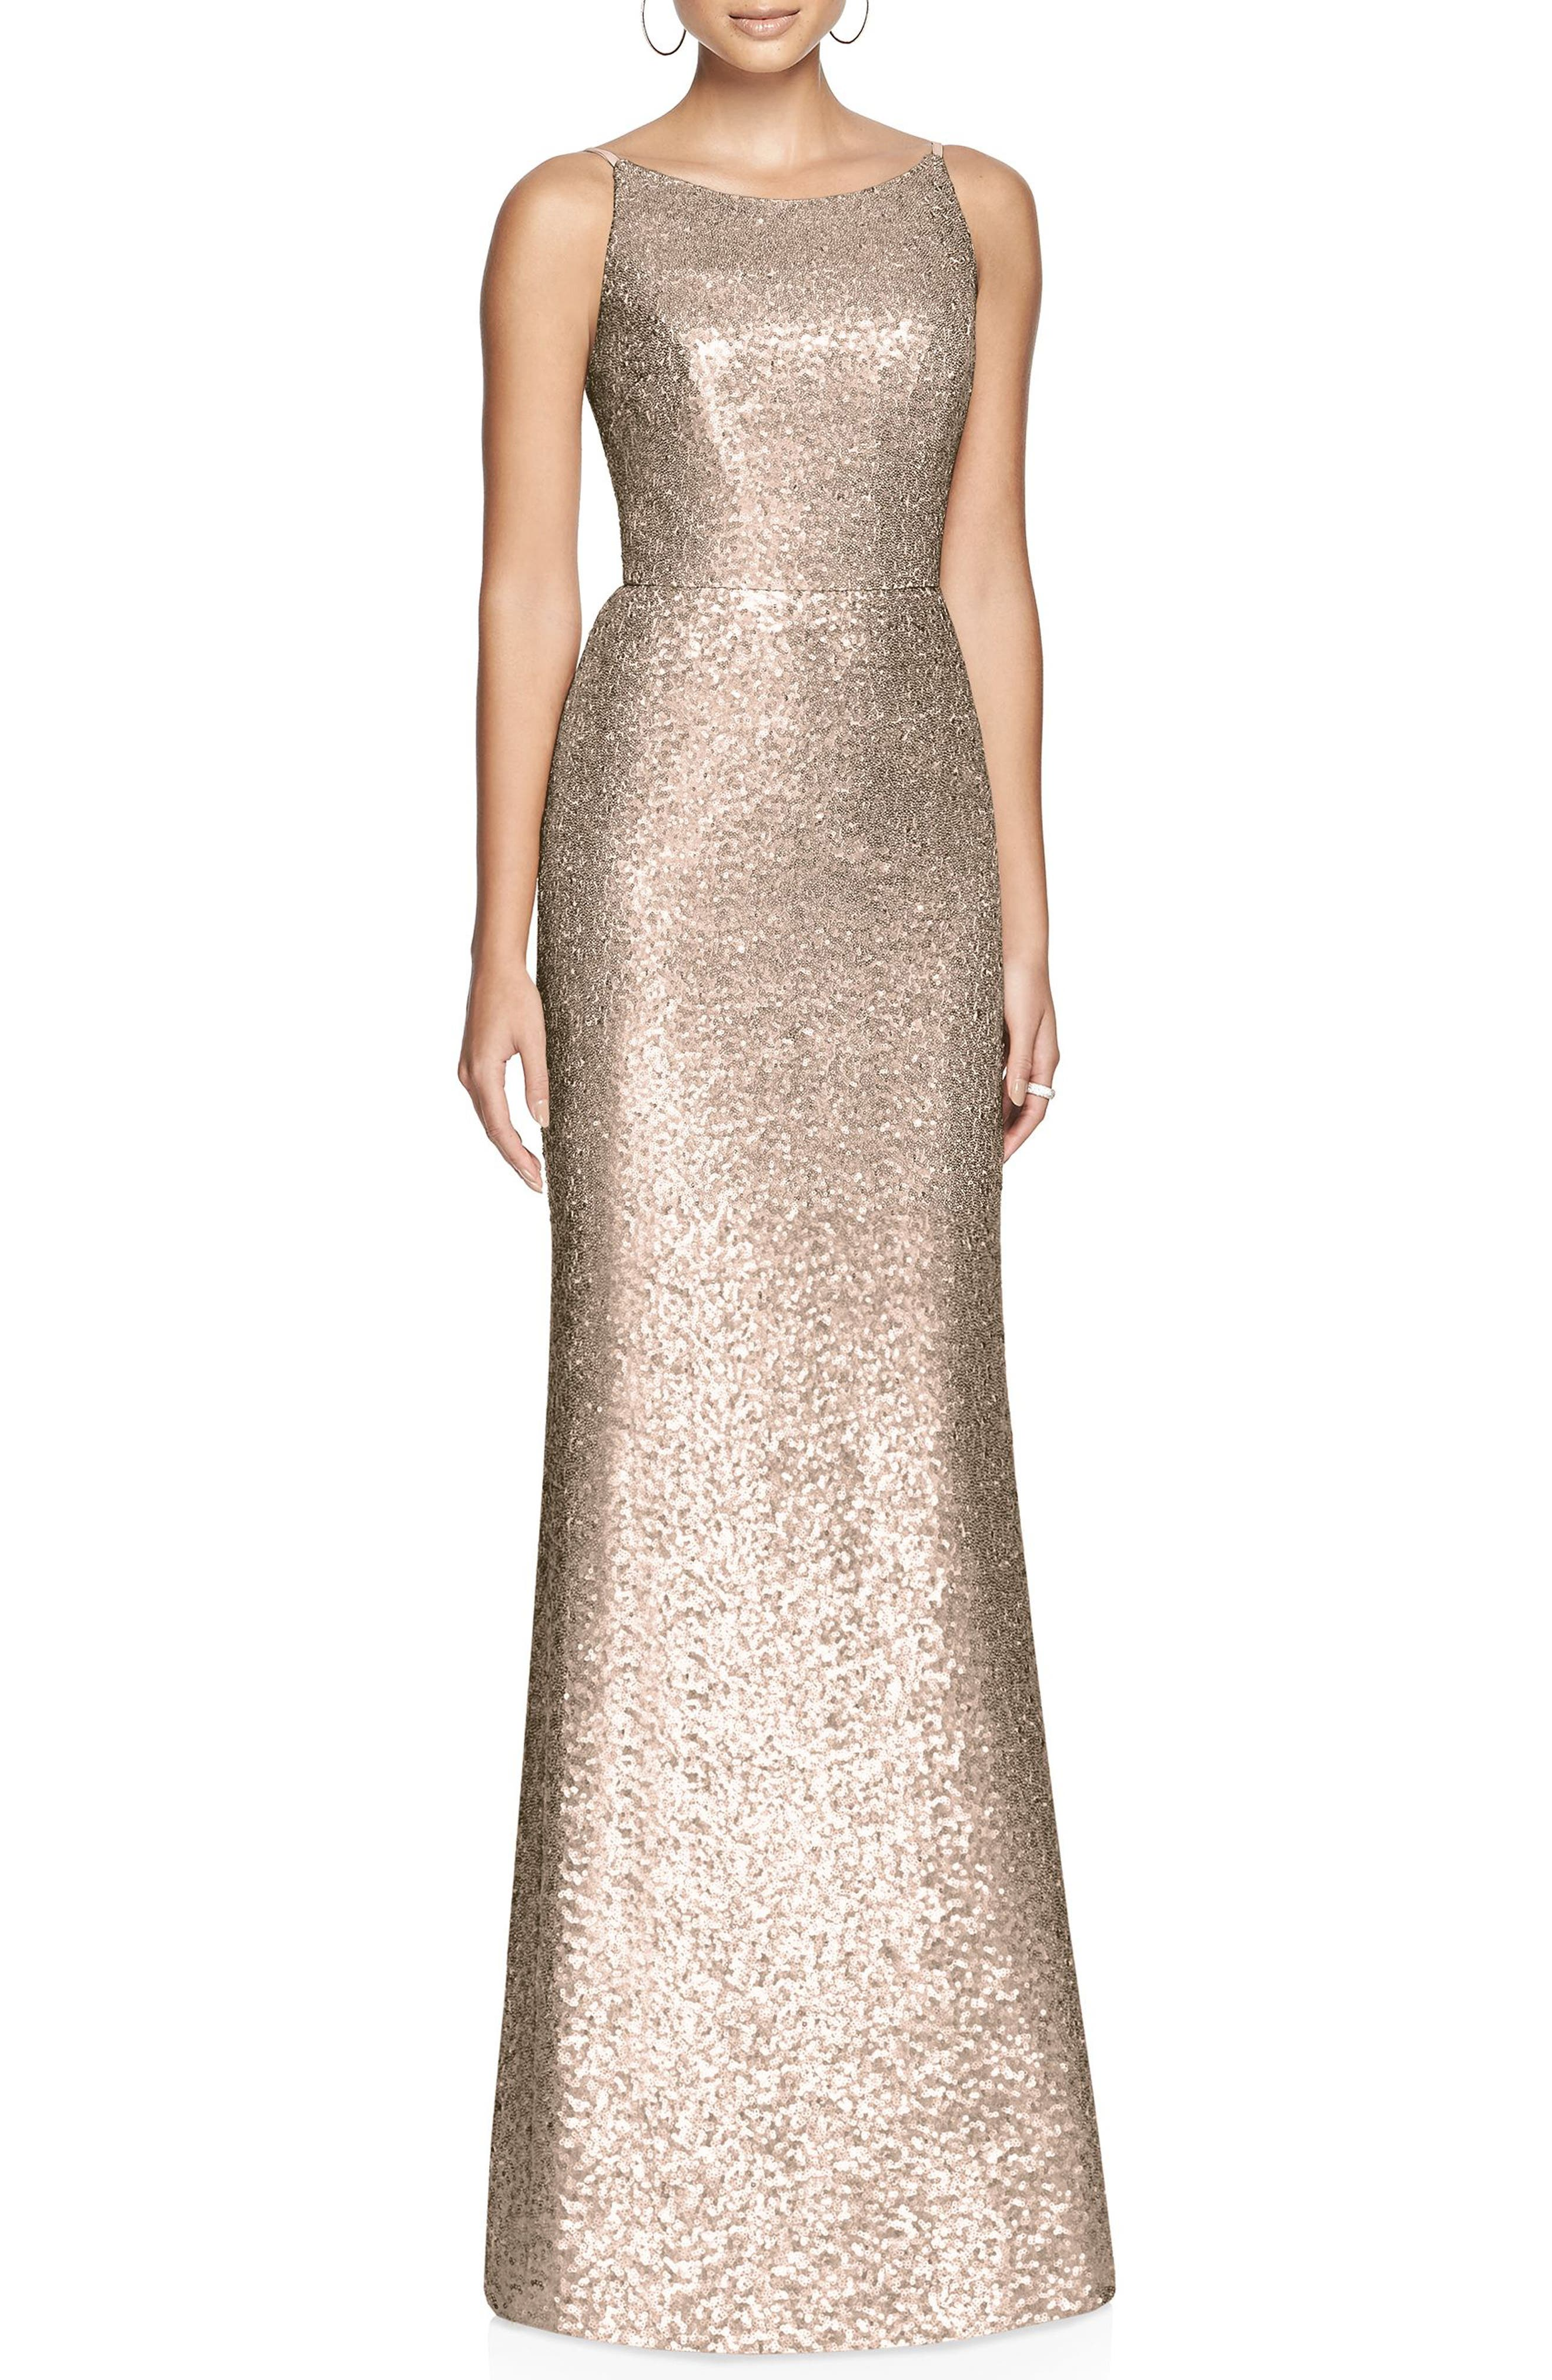 Bateau Neck Sequin Gown,                         Main,                         color, Rose Gold